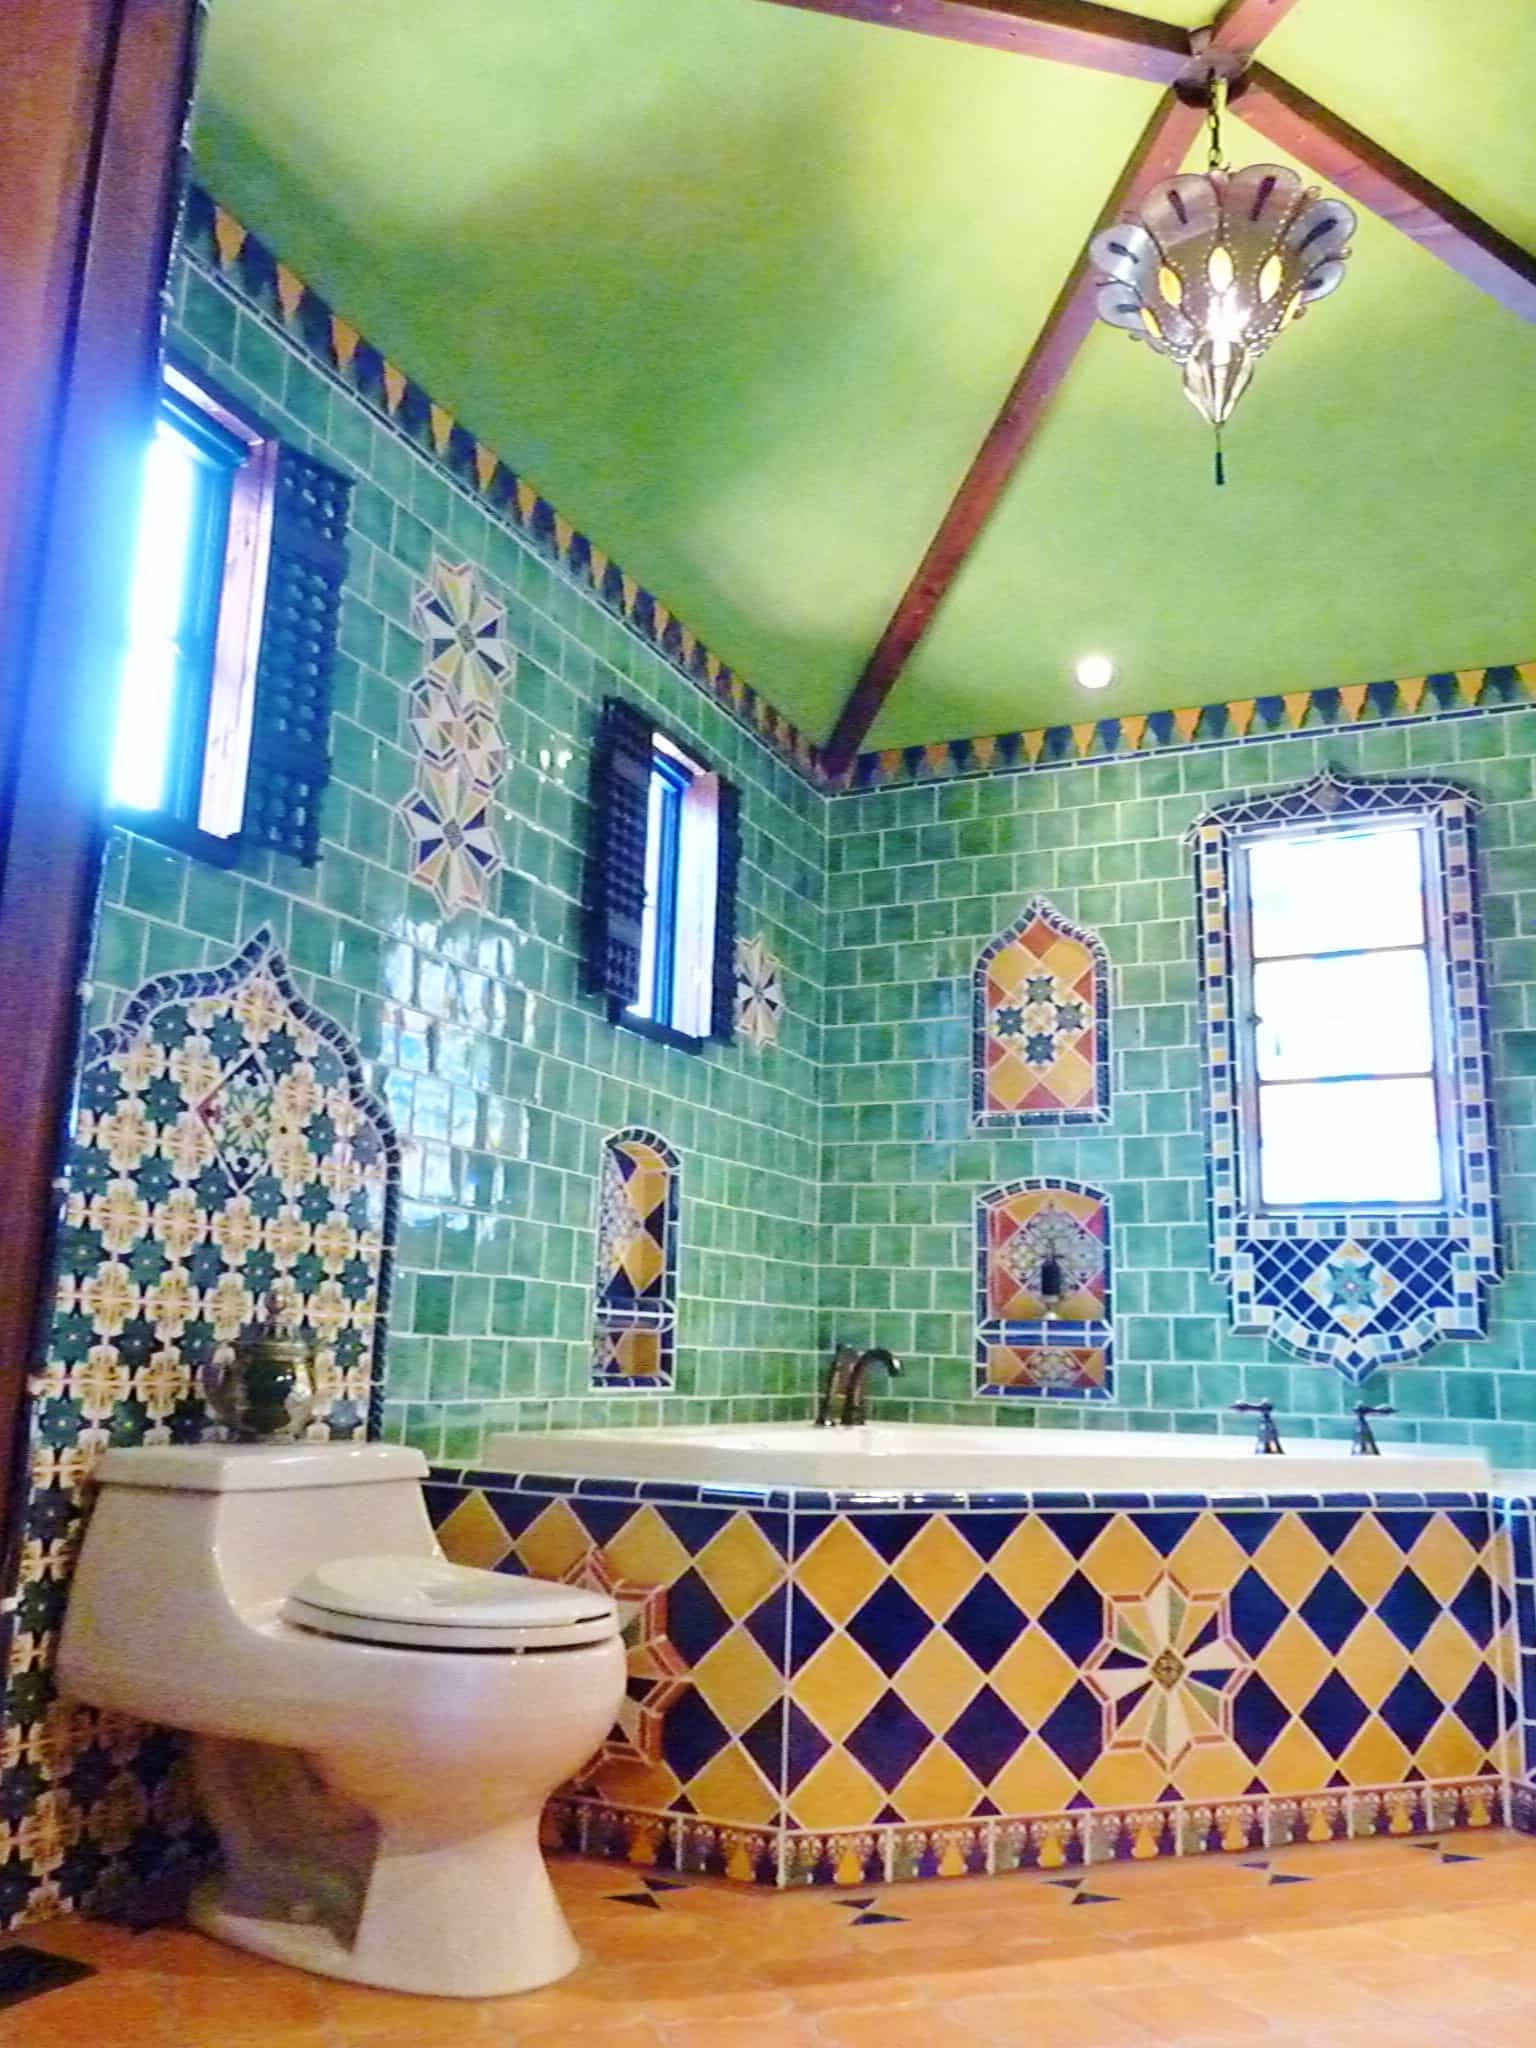 10 Mexican Bathroom Design Ideas #20000